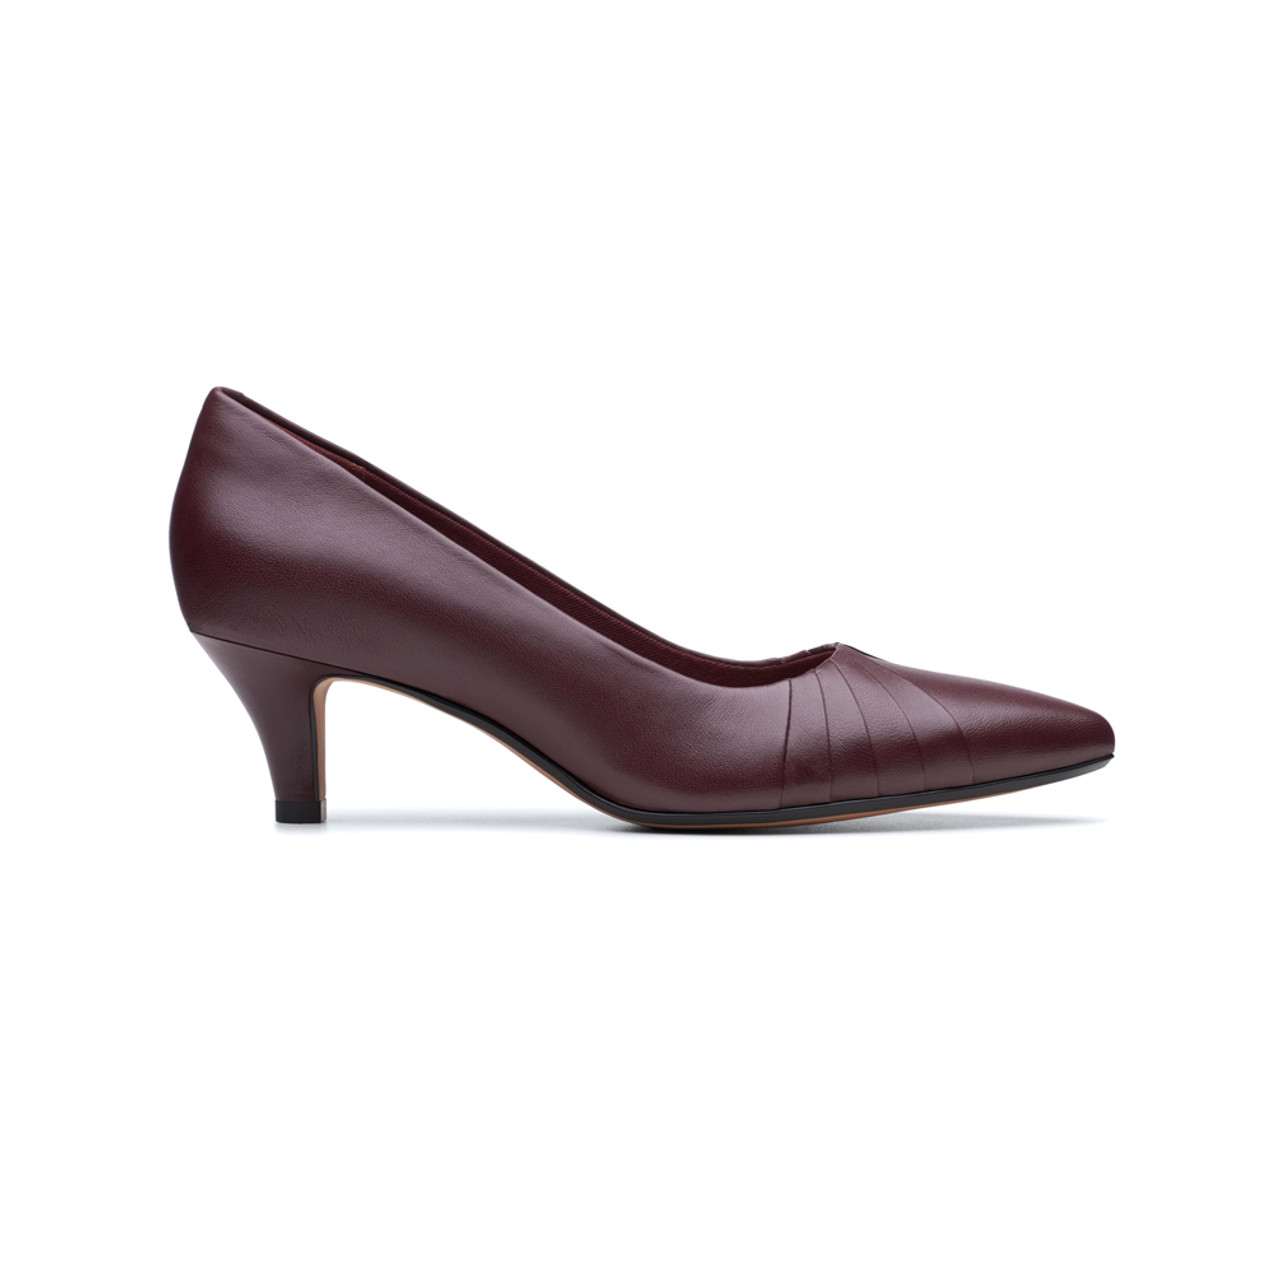 Clarks Women's Linvale Crown Pump - Red